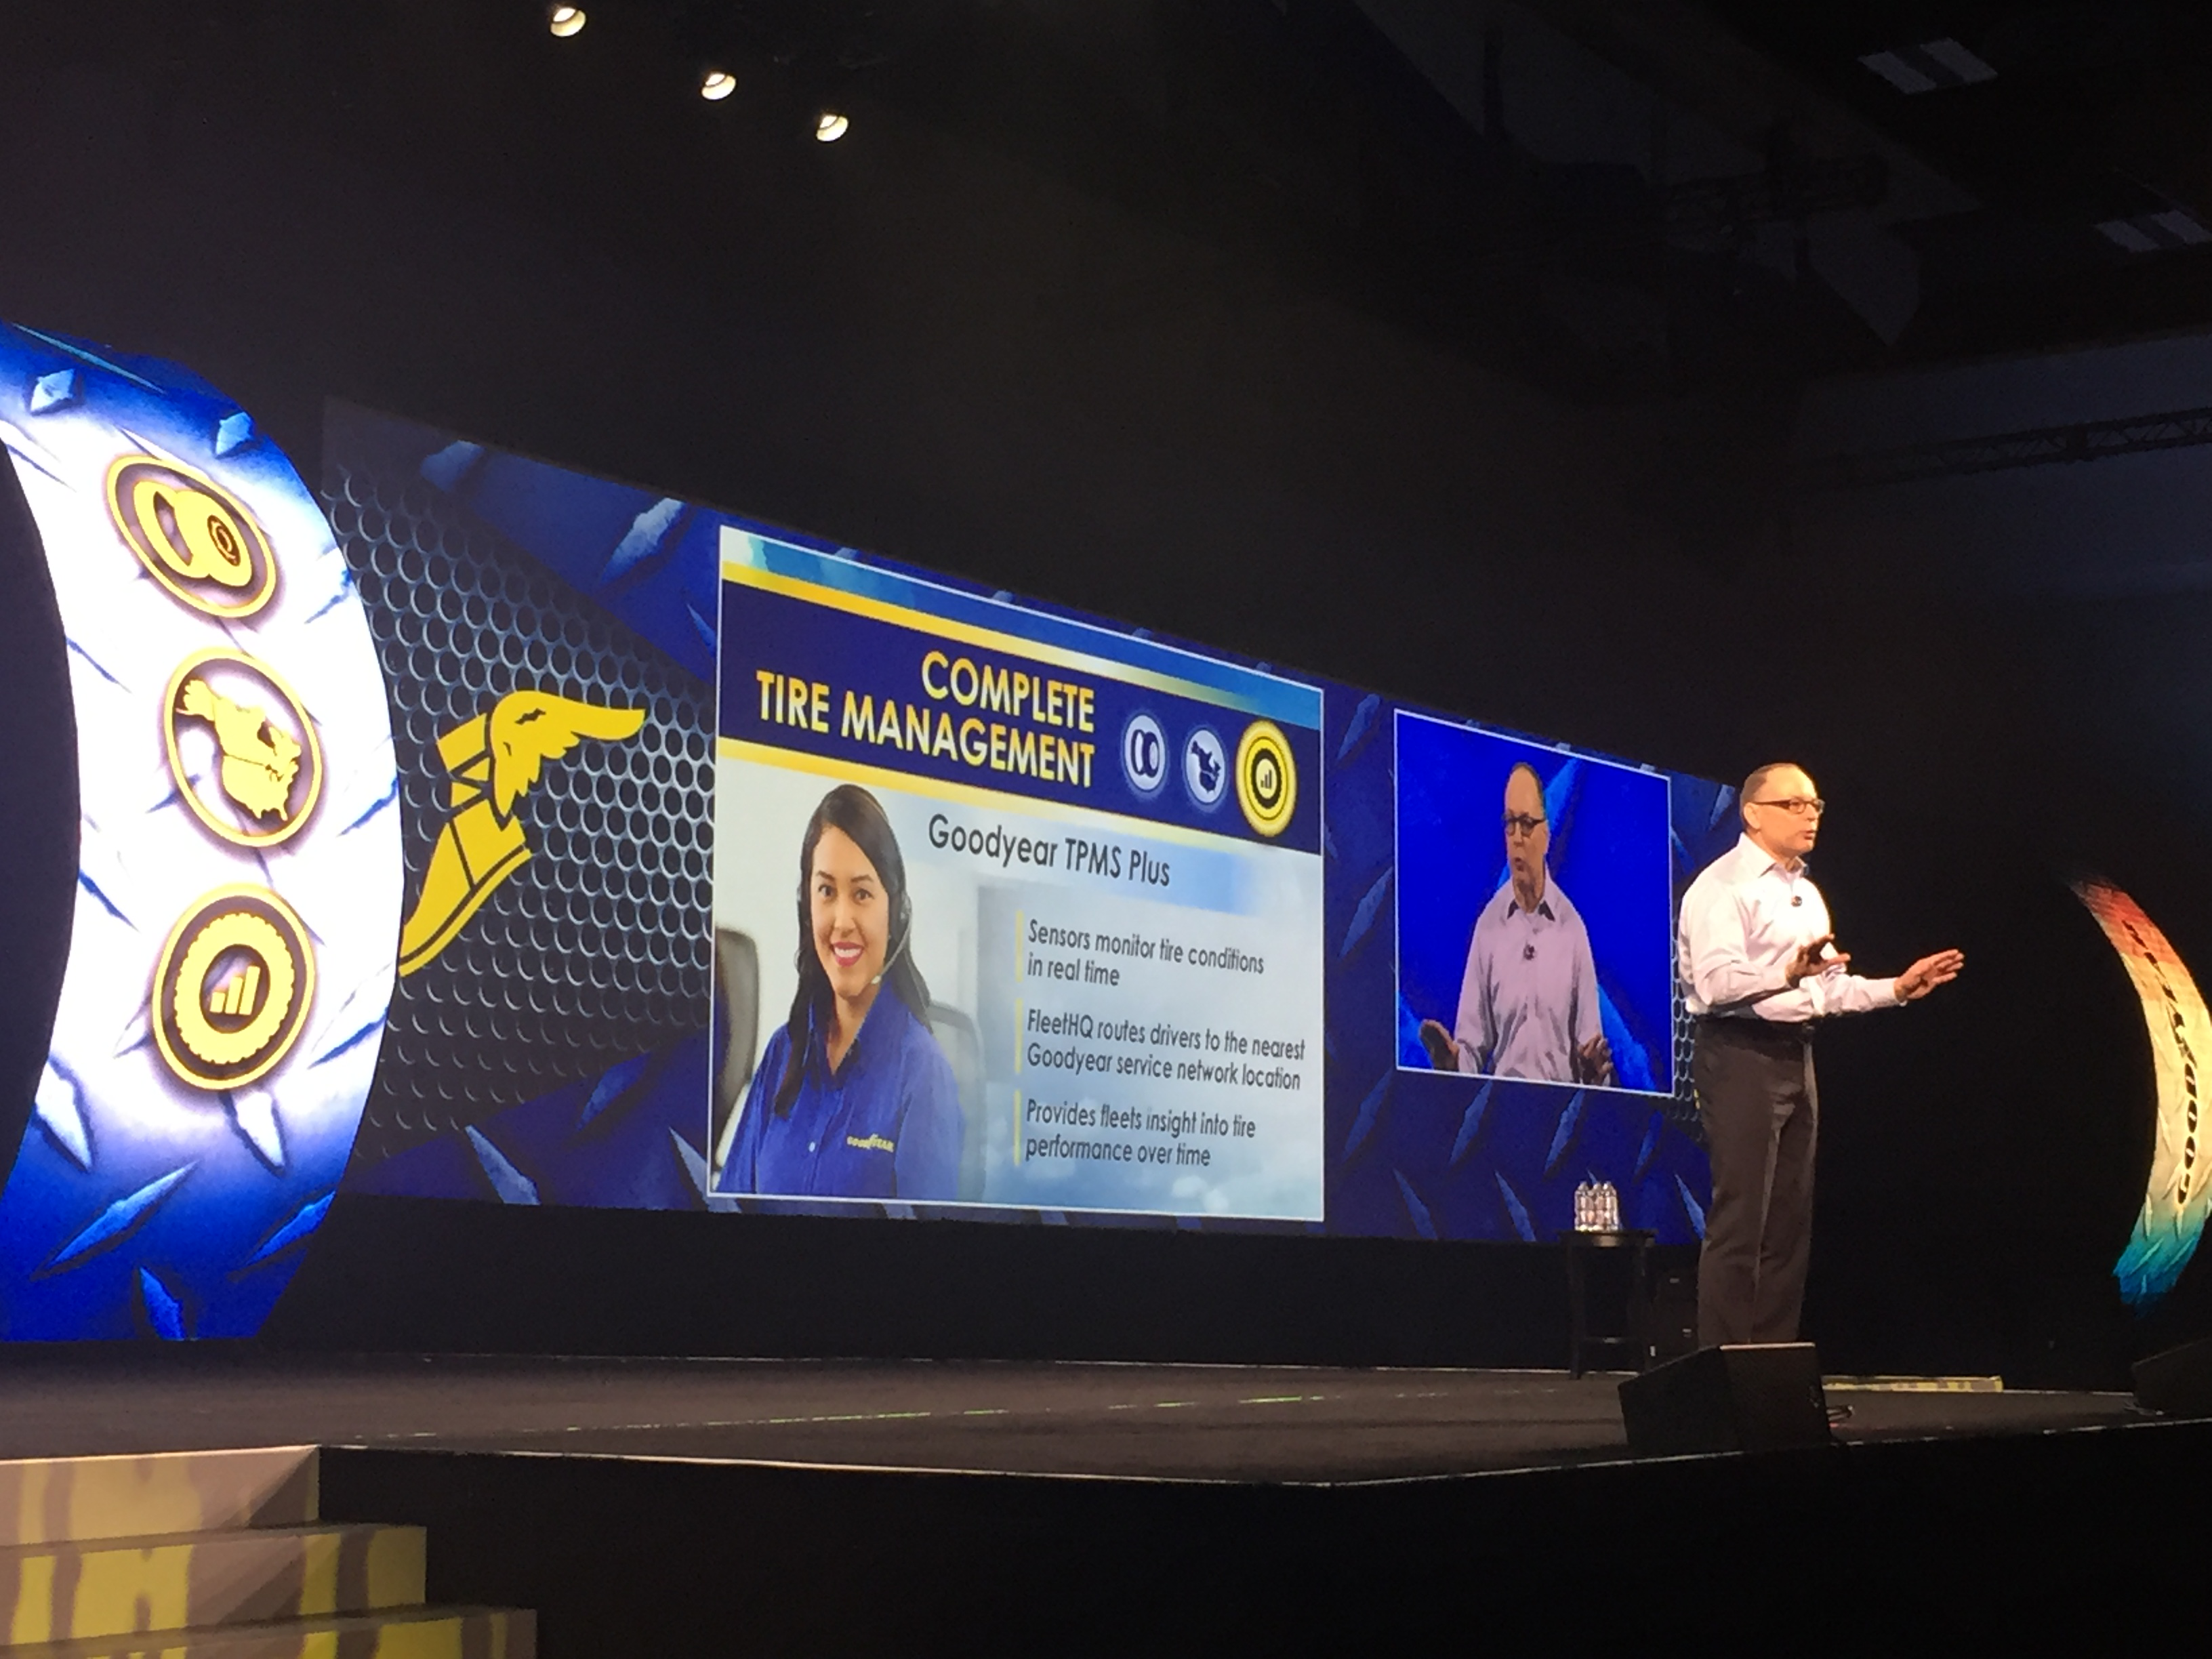 Dave Beasley, vice-president of commercial tires at Goodyear